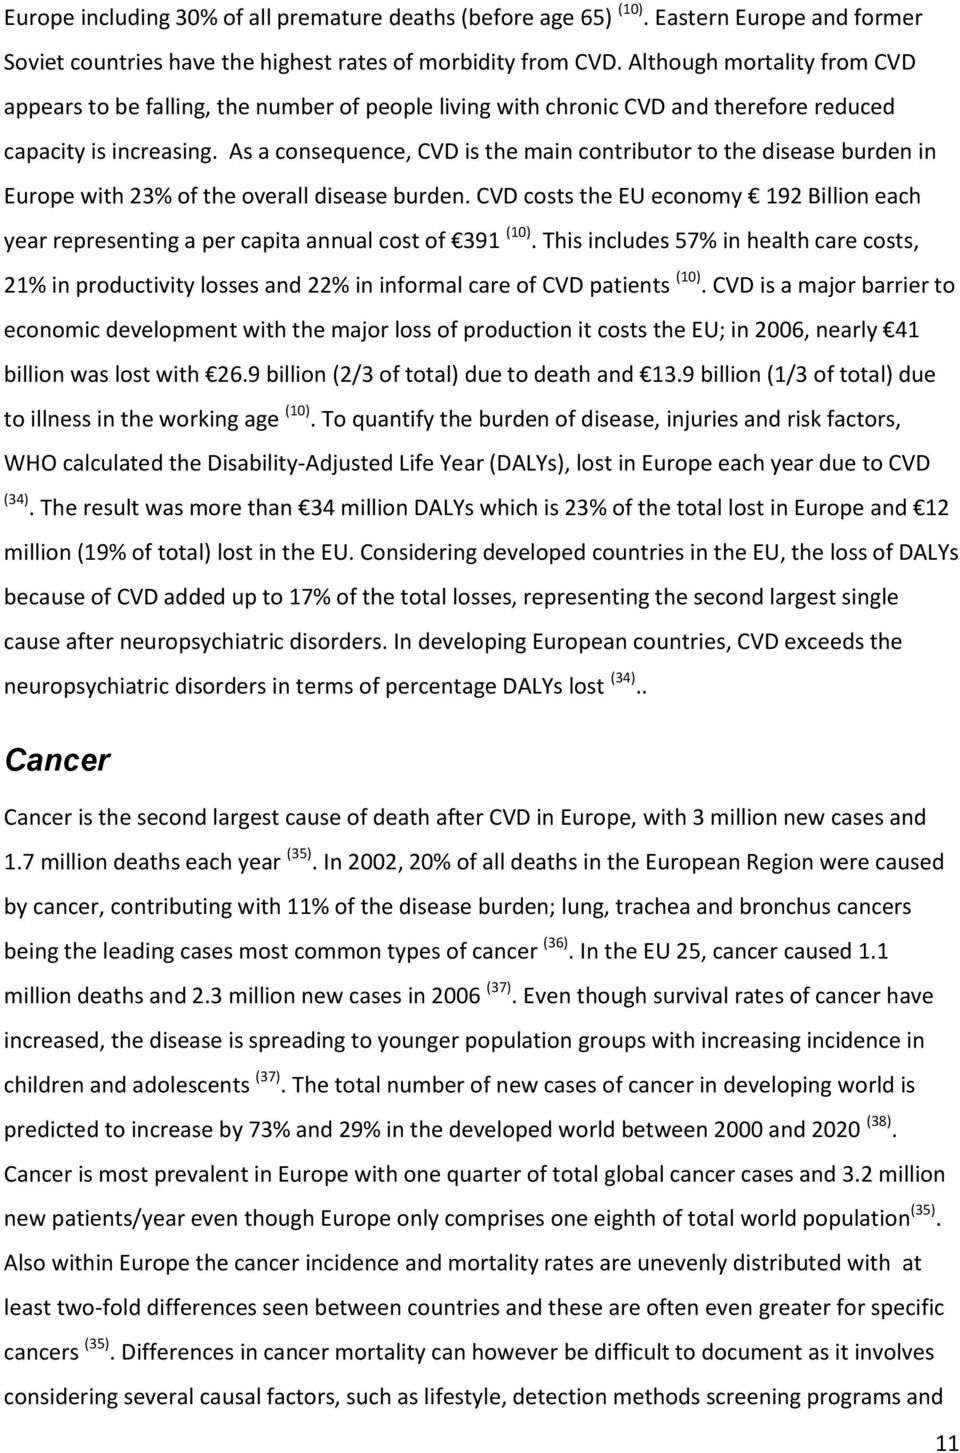 As a consequence, CVD is the main contributor to the disease burden in Europe with 23% of the overall disease burden.